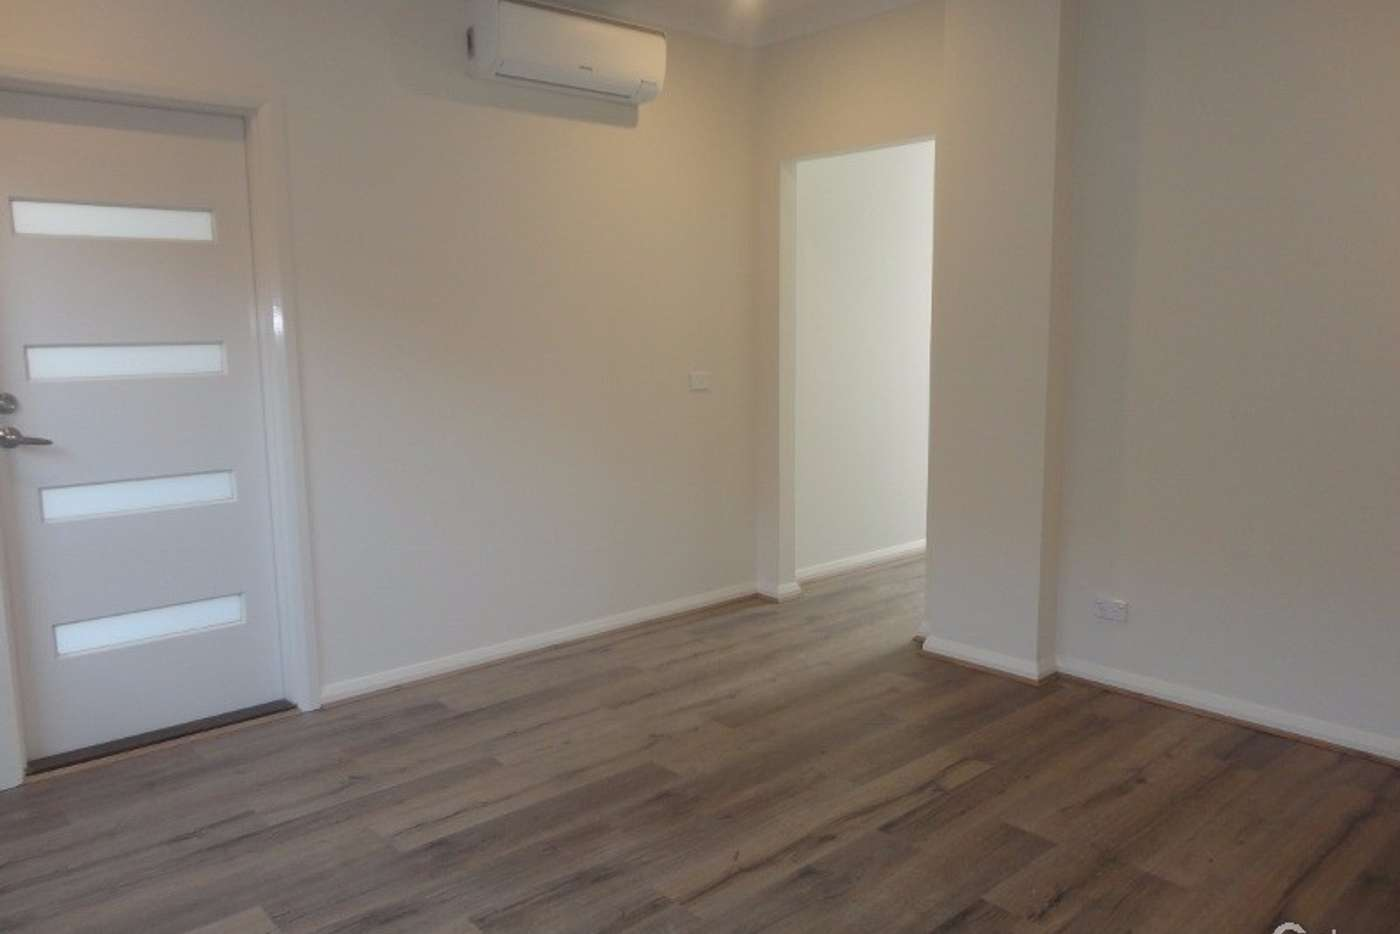 Sixth view of Homely townhouse listing, 19 Stanley Street, Dandenong VIC 3175